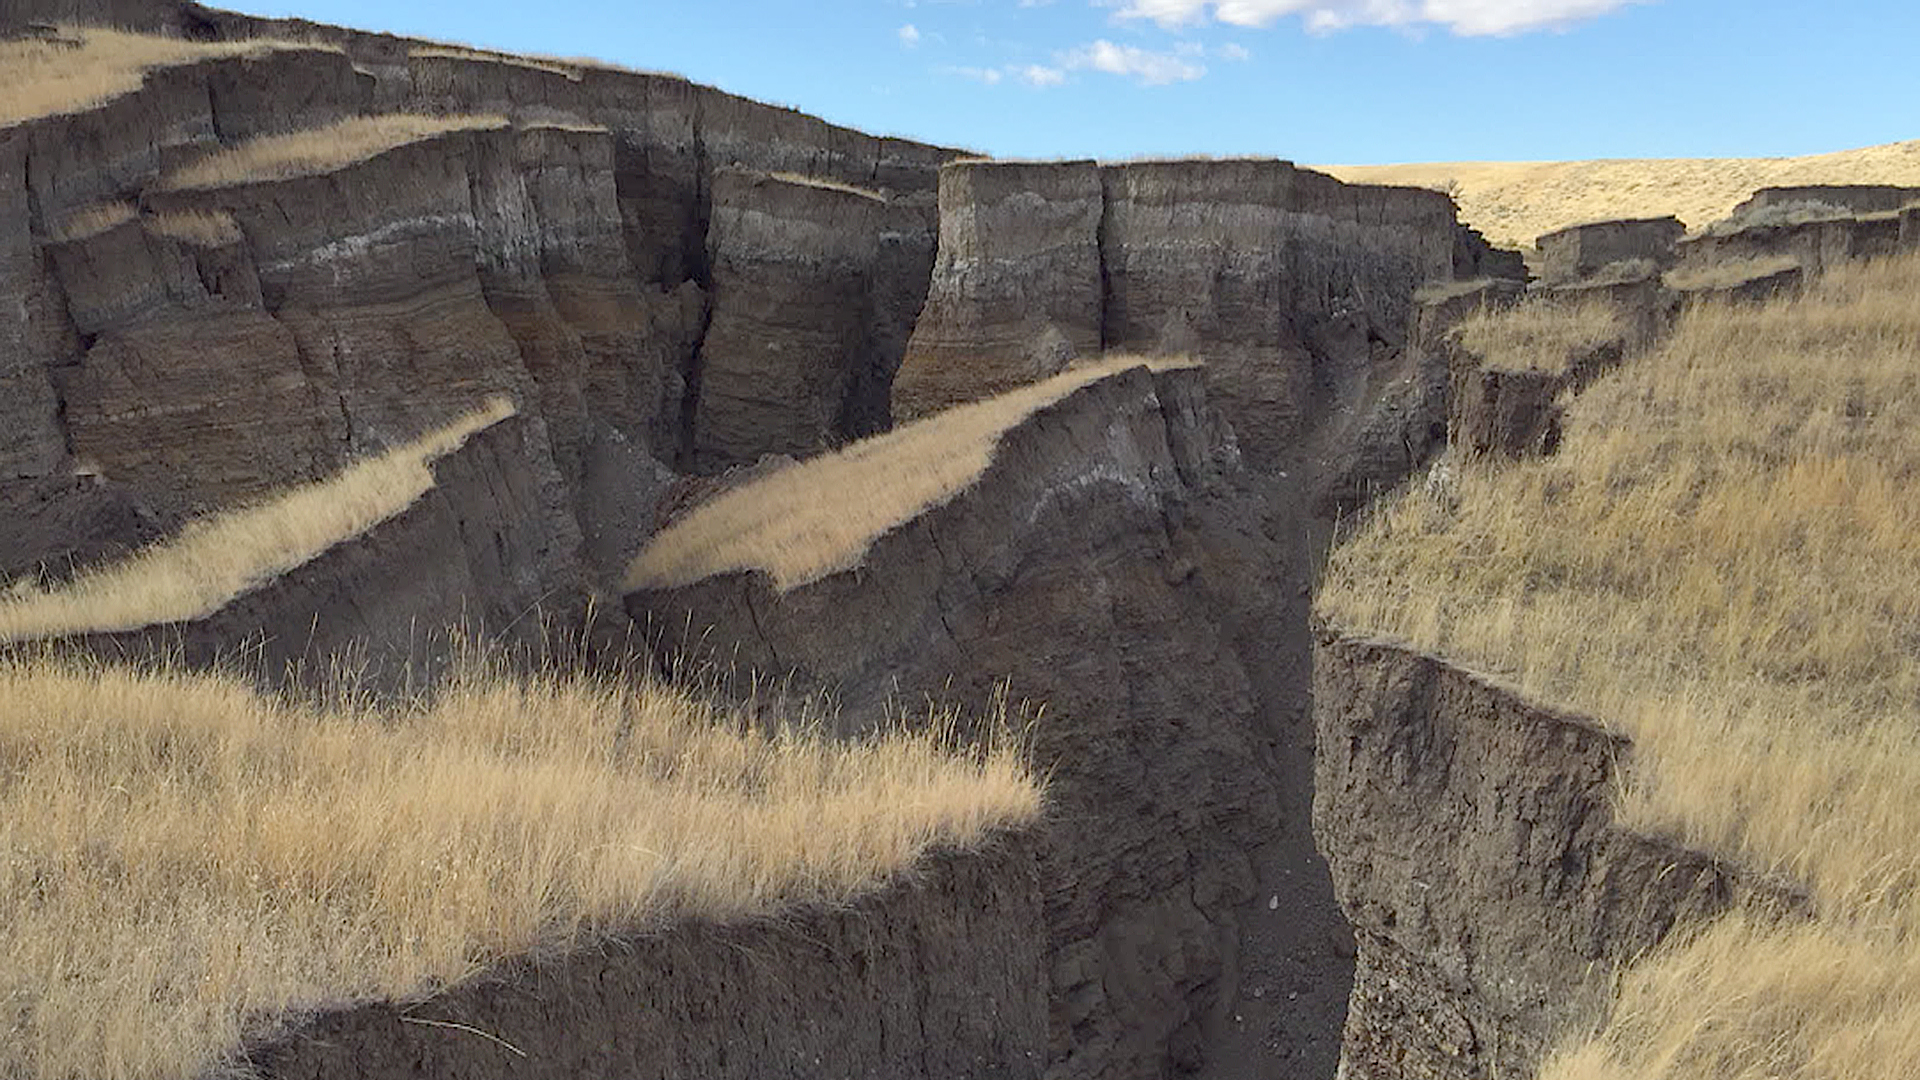 Growing Mystery Massive Crack In The Earth Discovered Wyoming